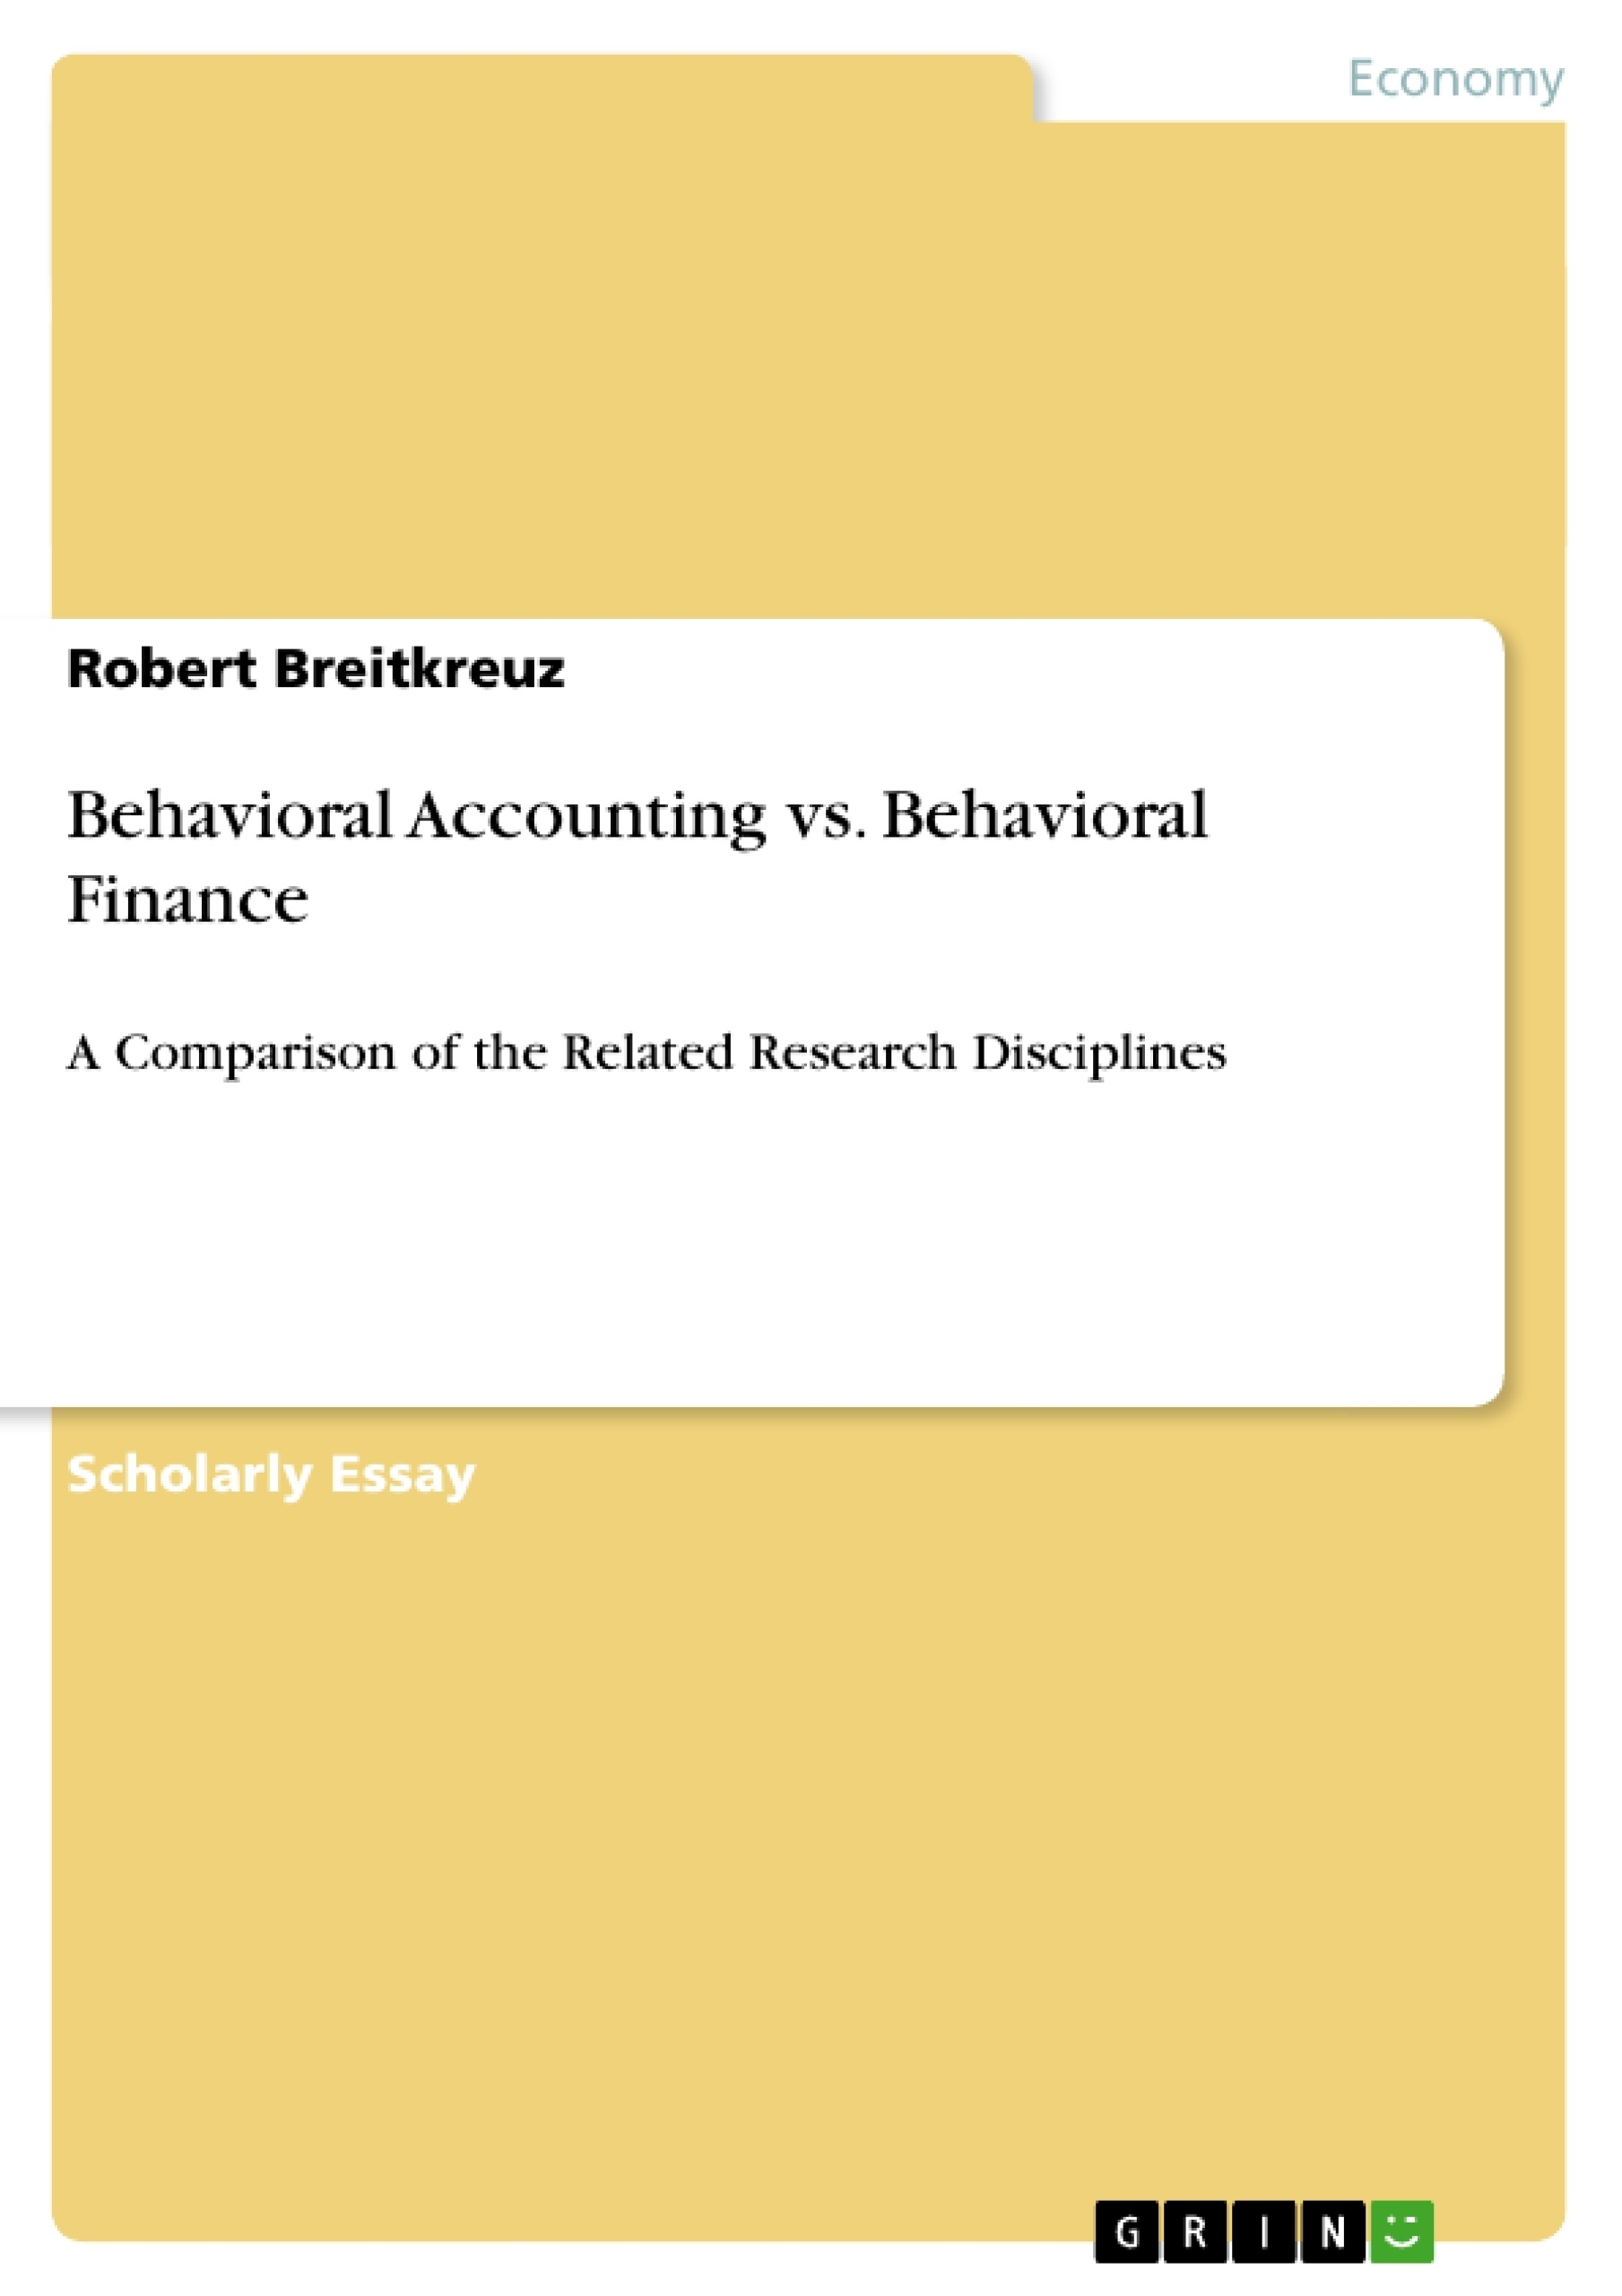 behavioral accounting vs behavioral finance publish your behavioral accounting vs behavioral finance publish your master s thesis bachelor s thesis essay or term paper